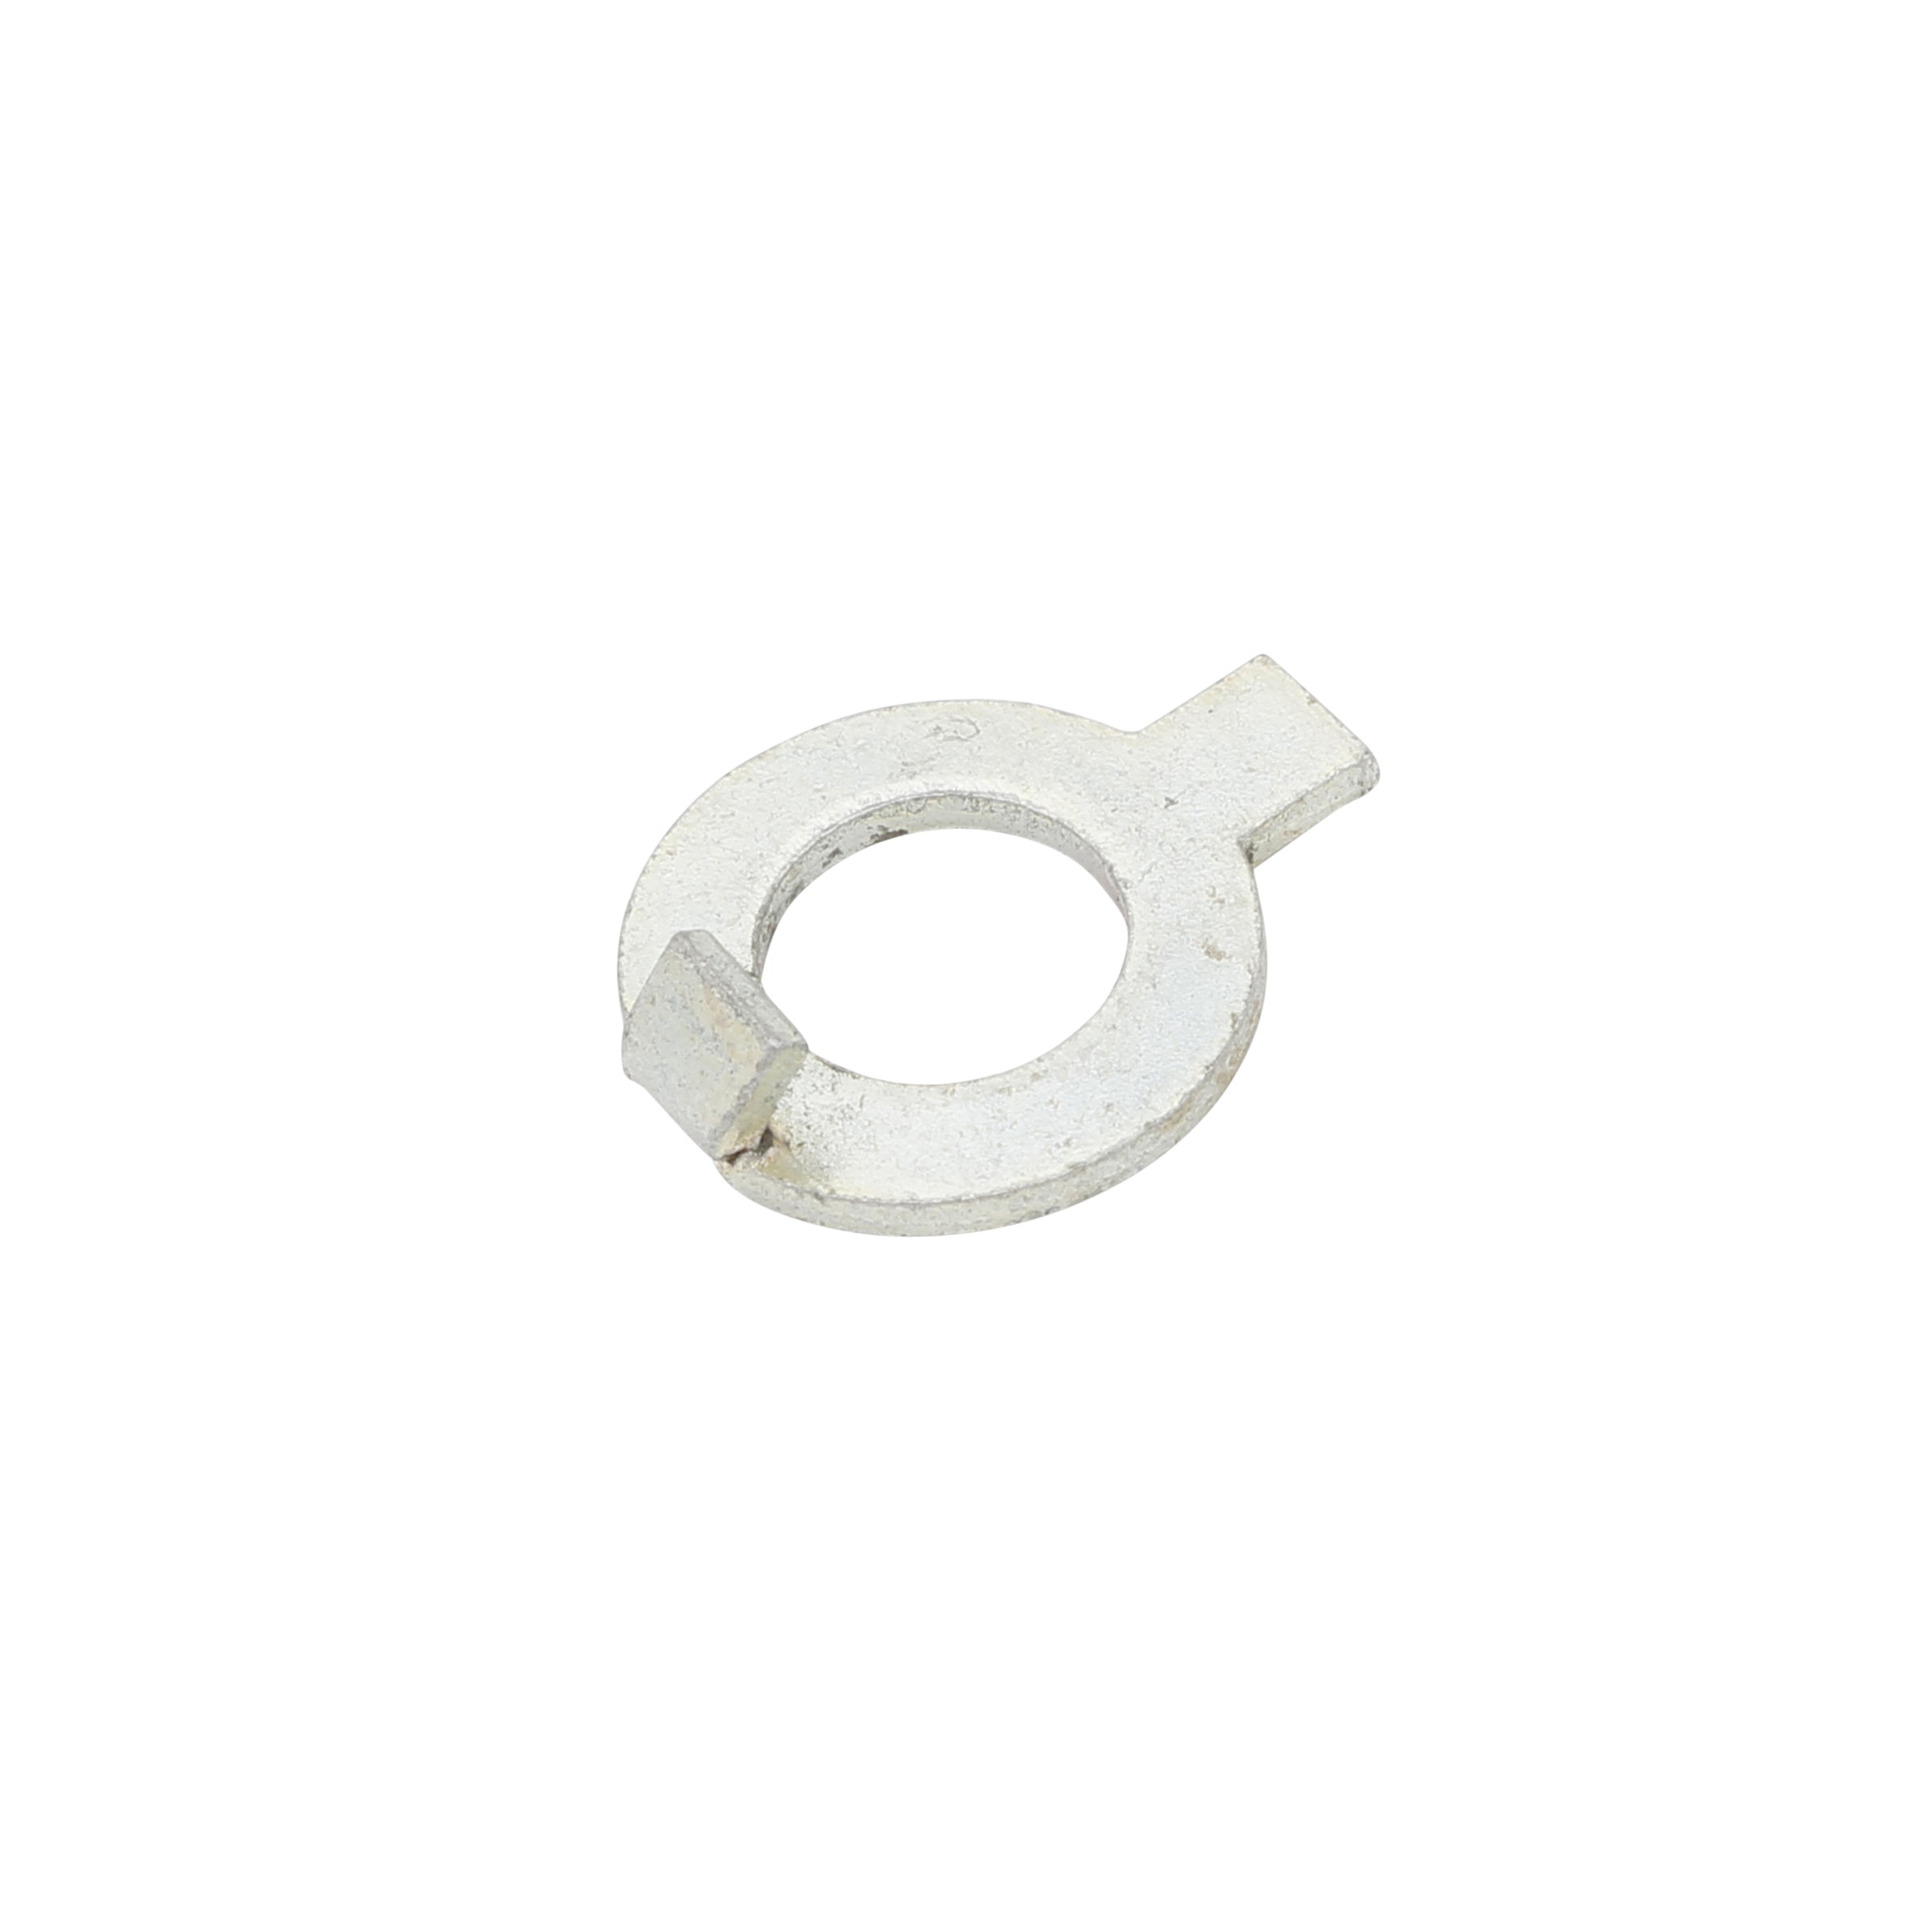 Starter Drive Lock Washer (3/8) • 1928-48 Ford